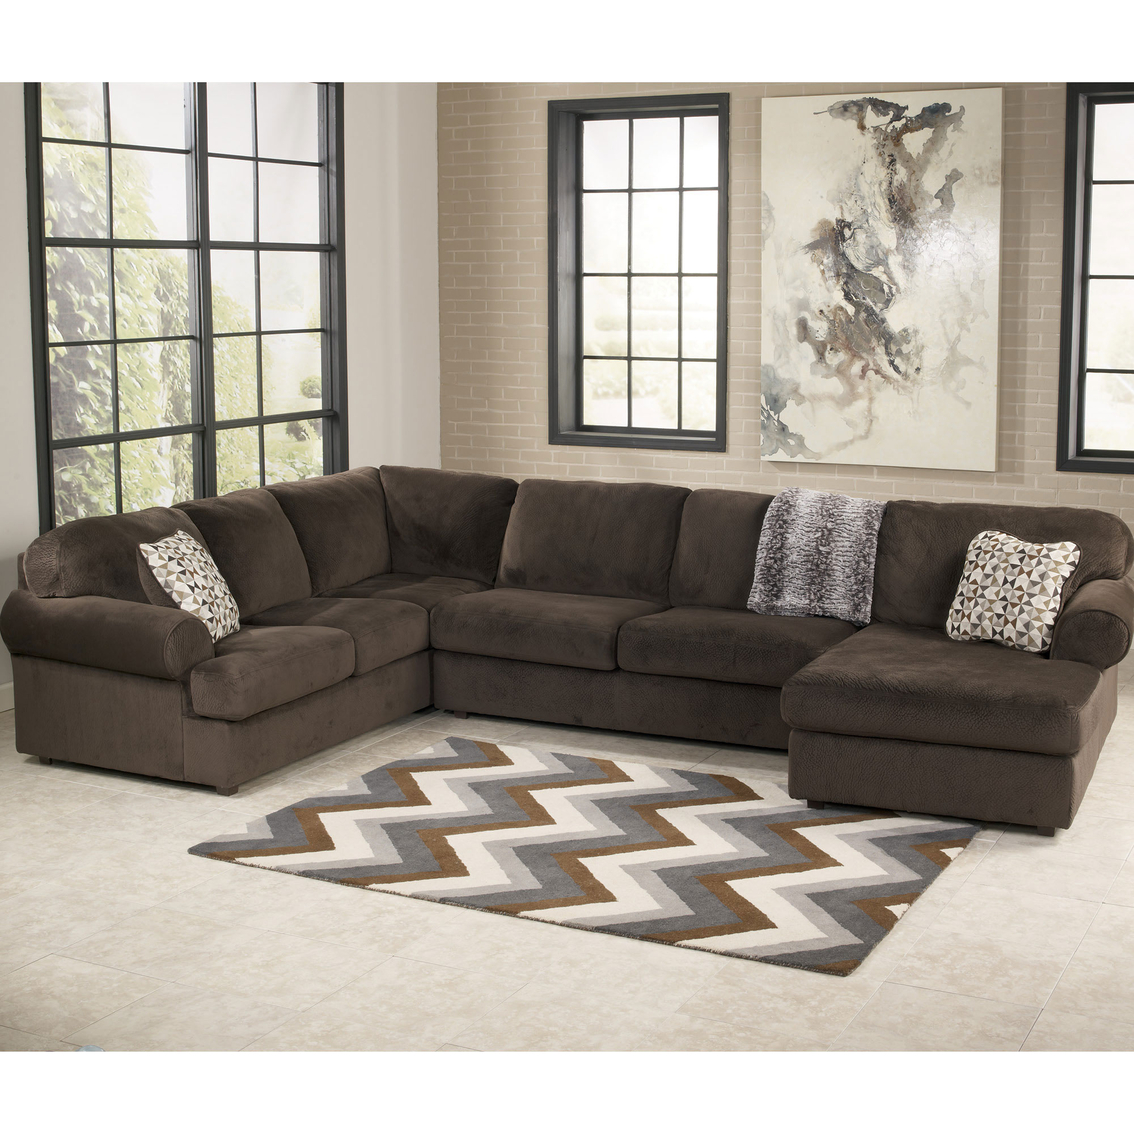 Ashley Design: Signature Design By Ashley Jessa Place 3 Pc. Sectional